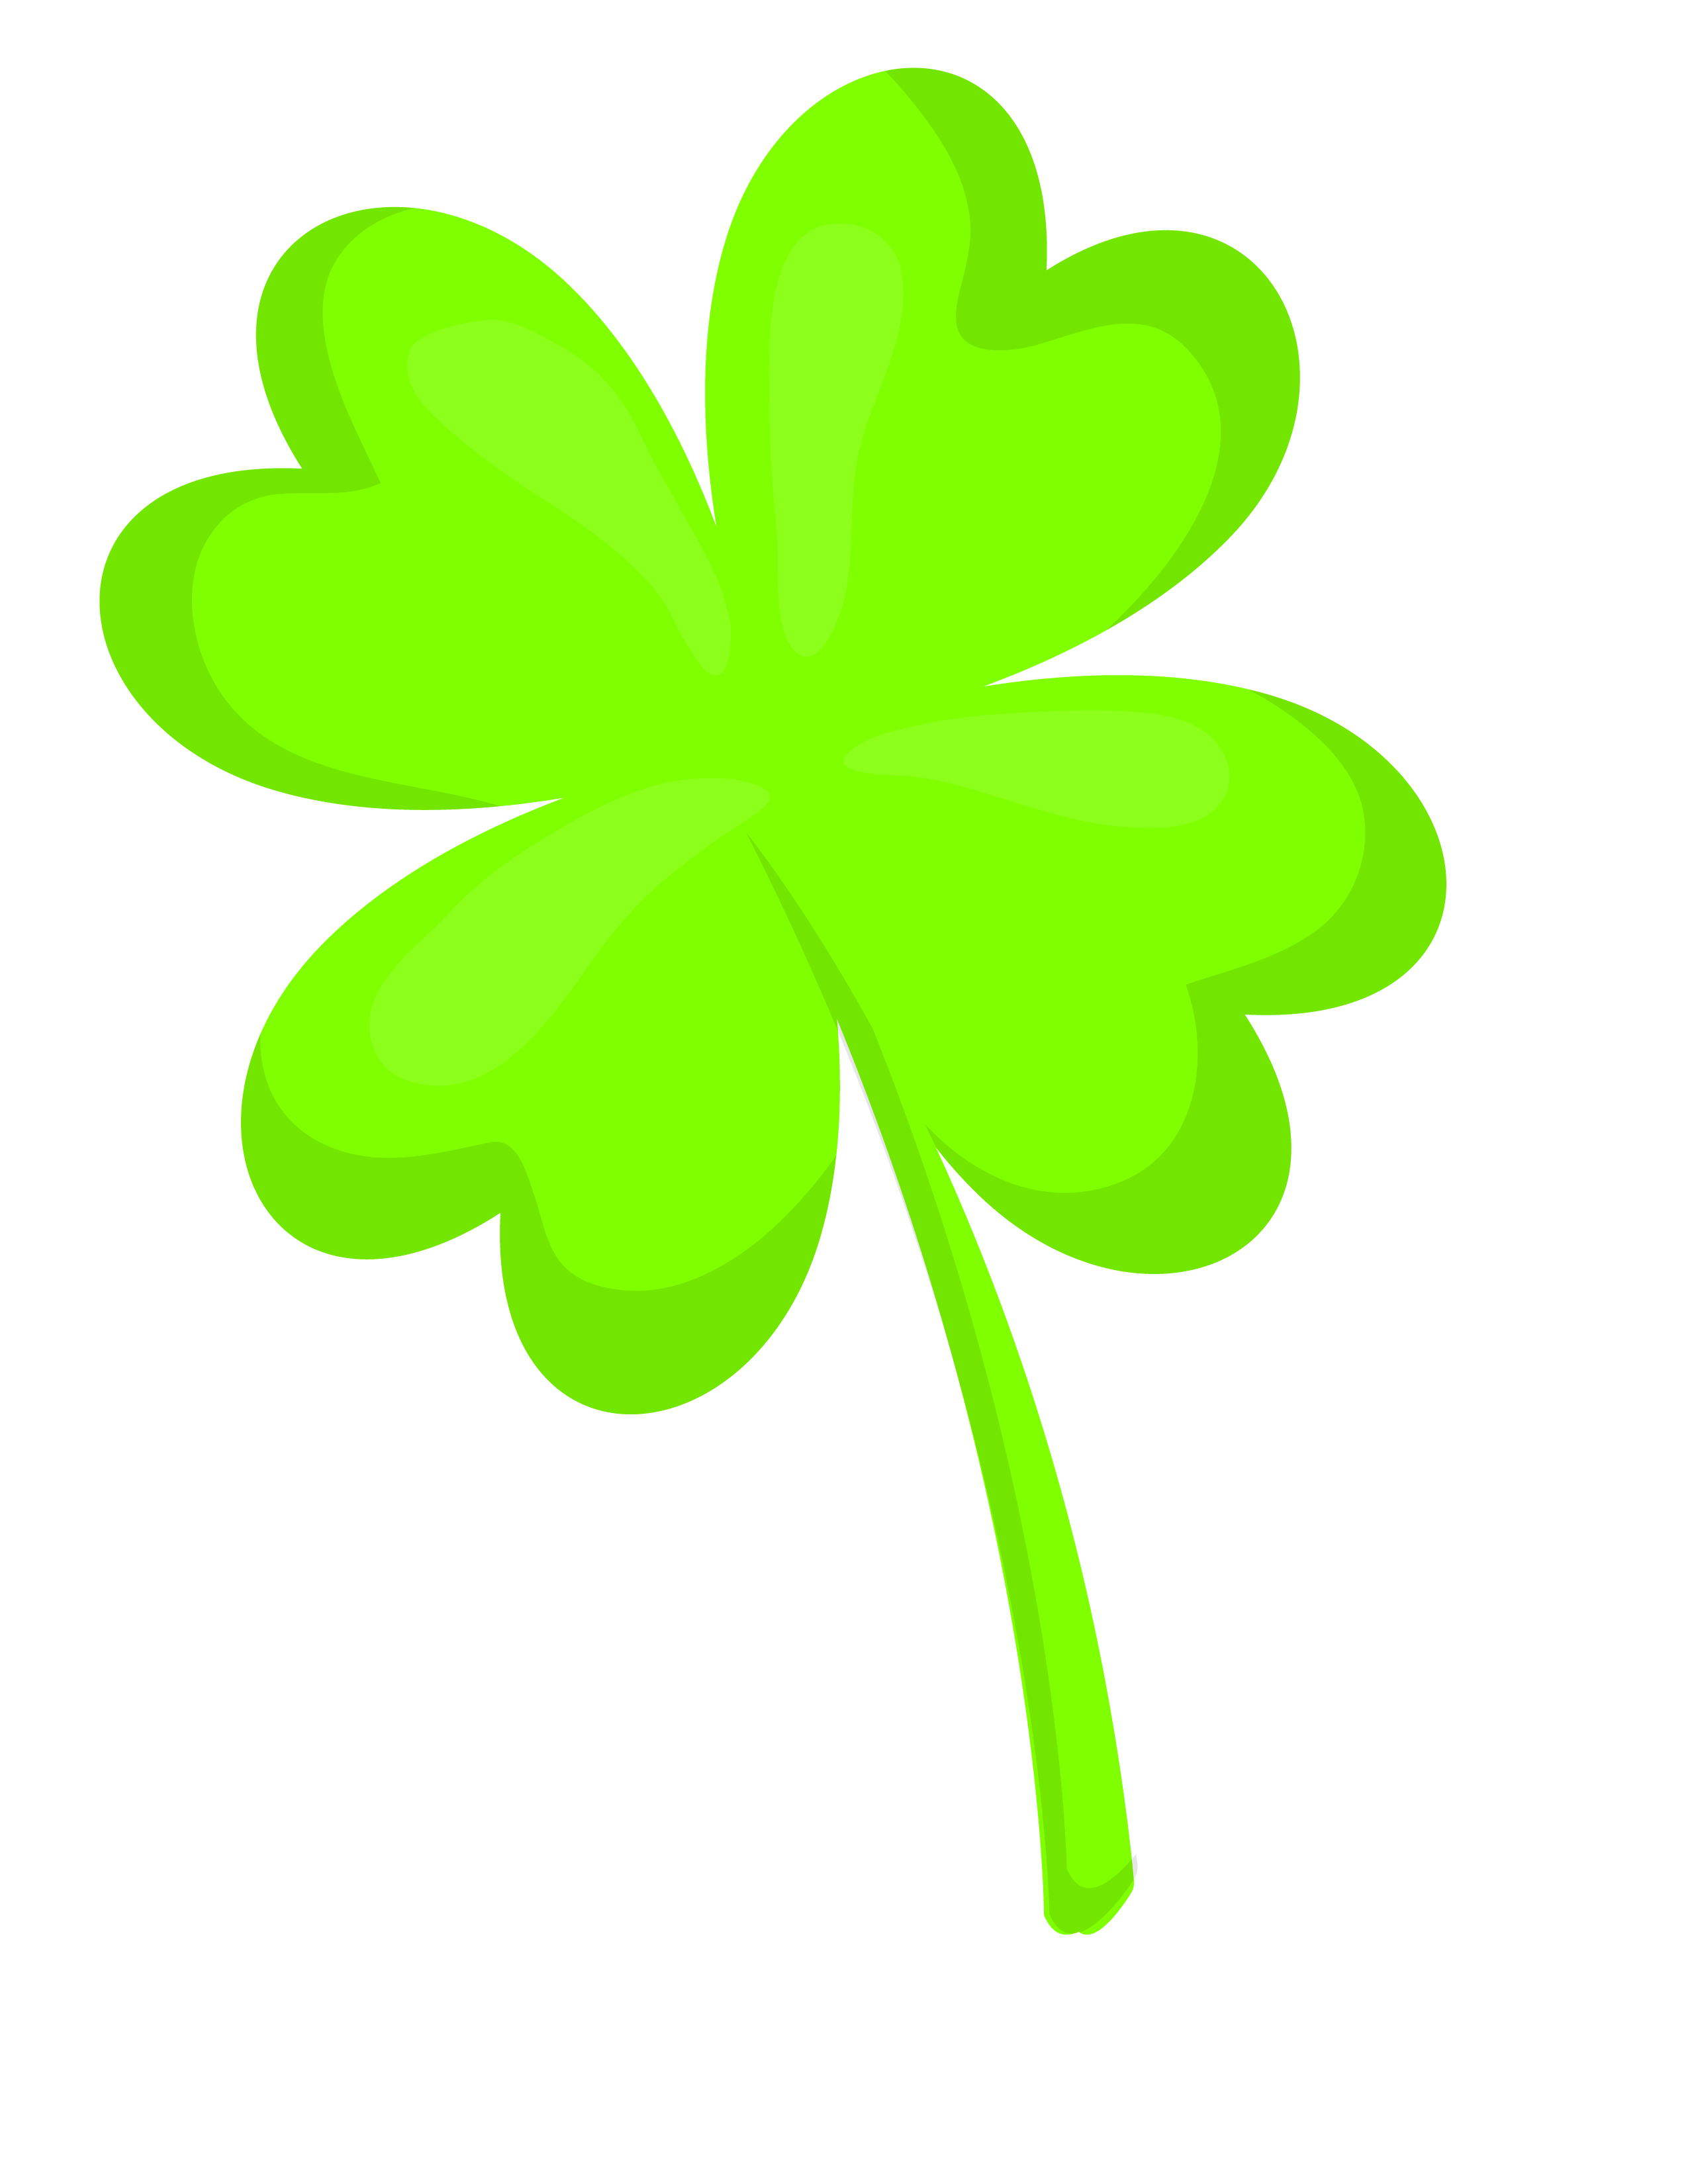 Cut out this large green free printable four leaf clover template and use it to make frugal St. Patrick's Day decorations.